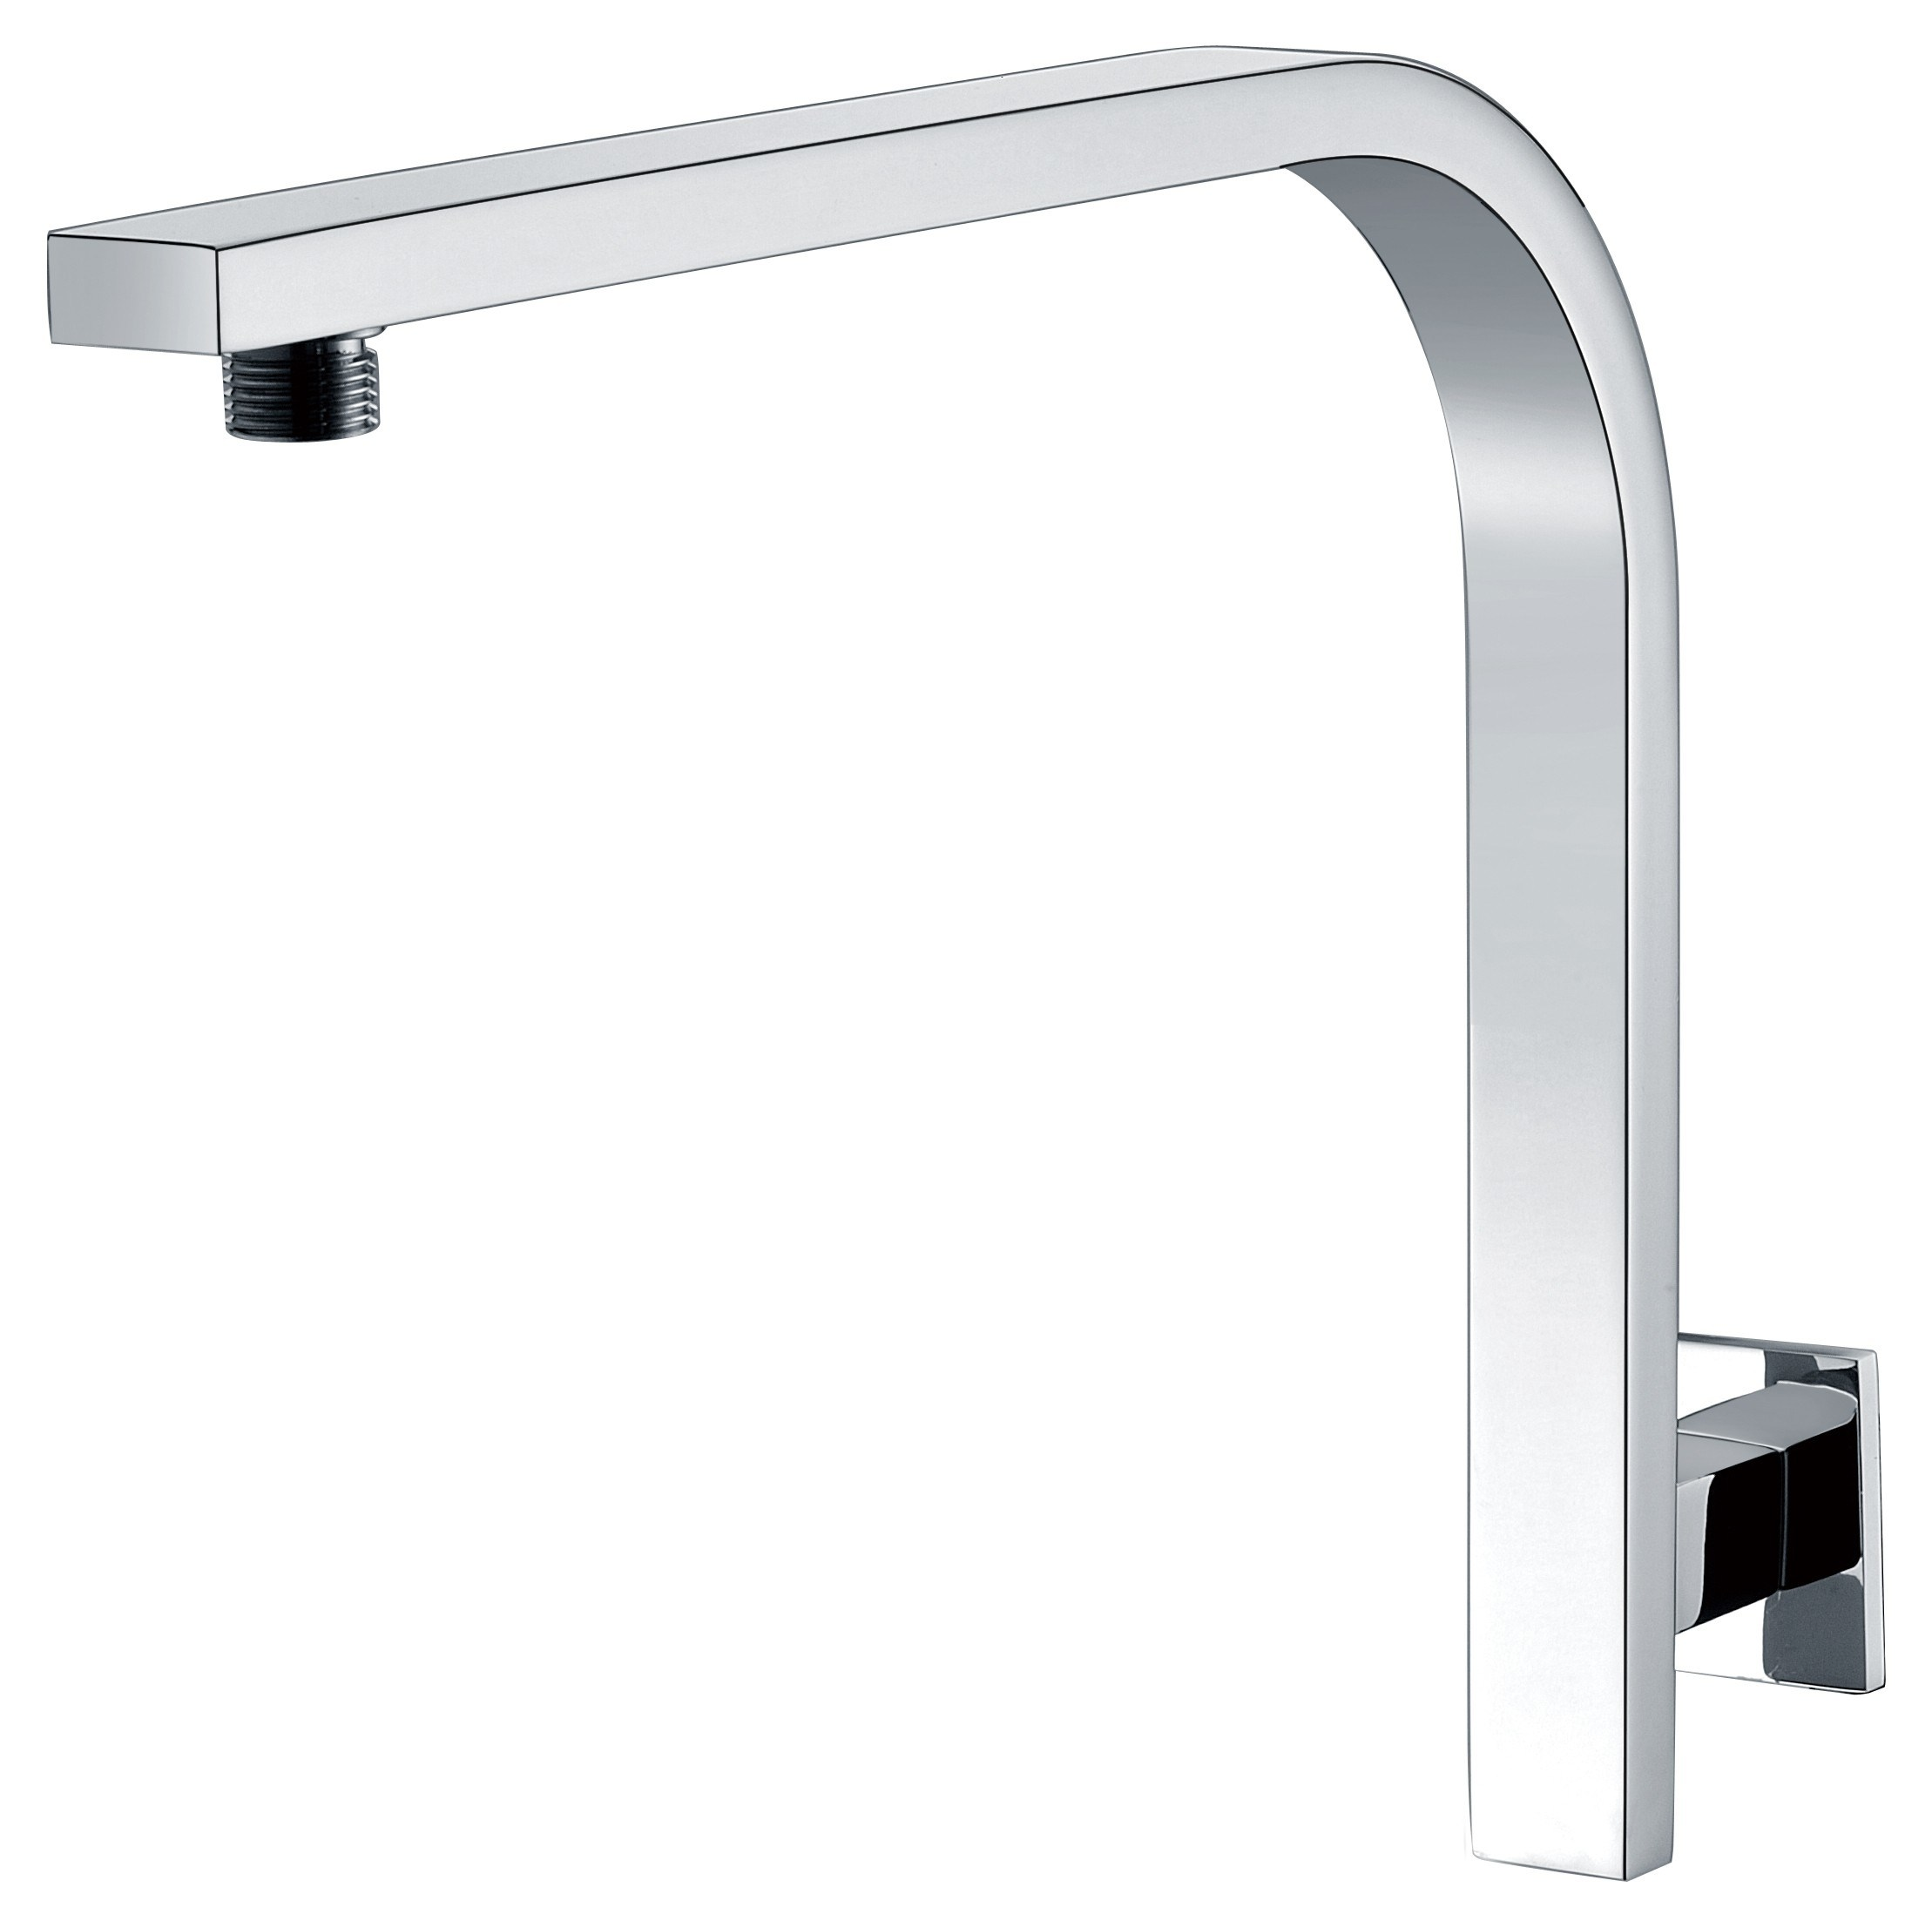 Picture of: China Square Brass Riser Rain Wall Shower Arm Extension China Shower Arm Shower Extension